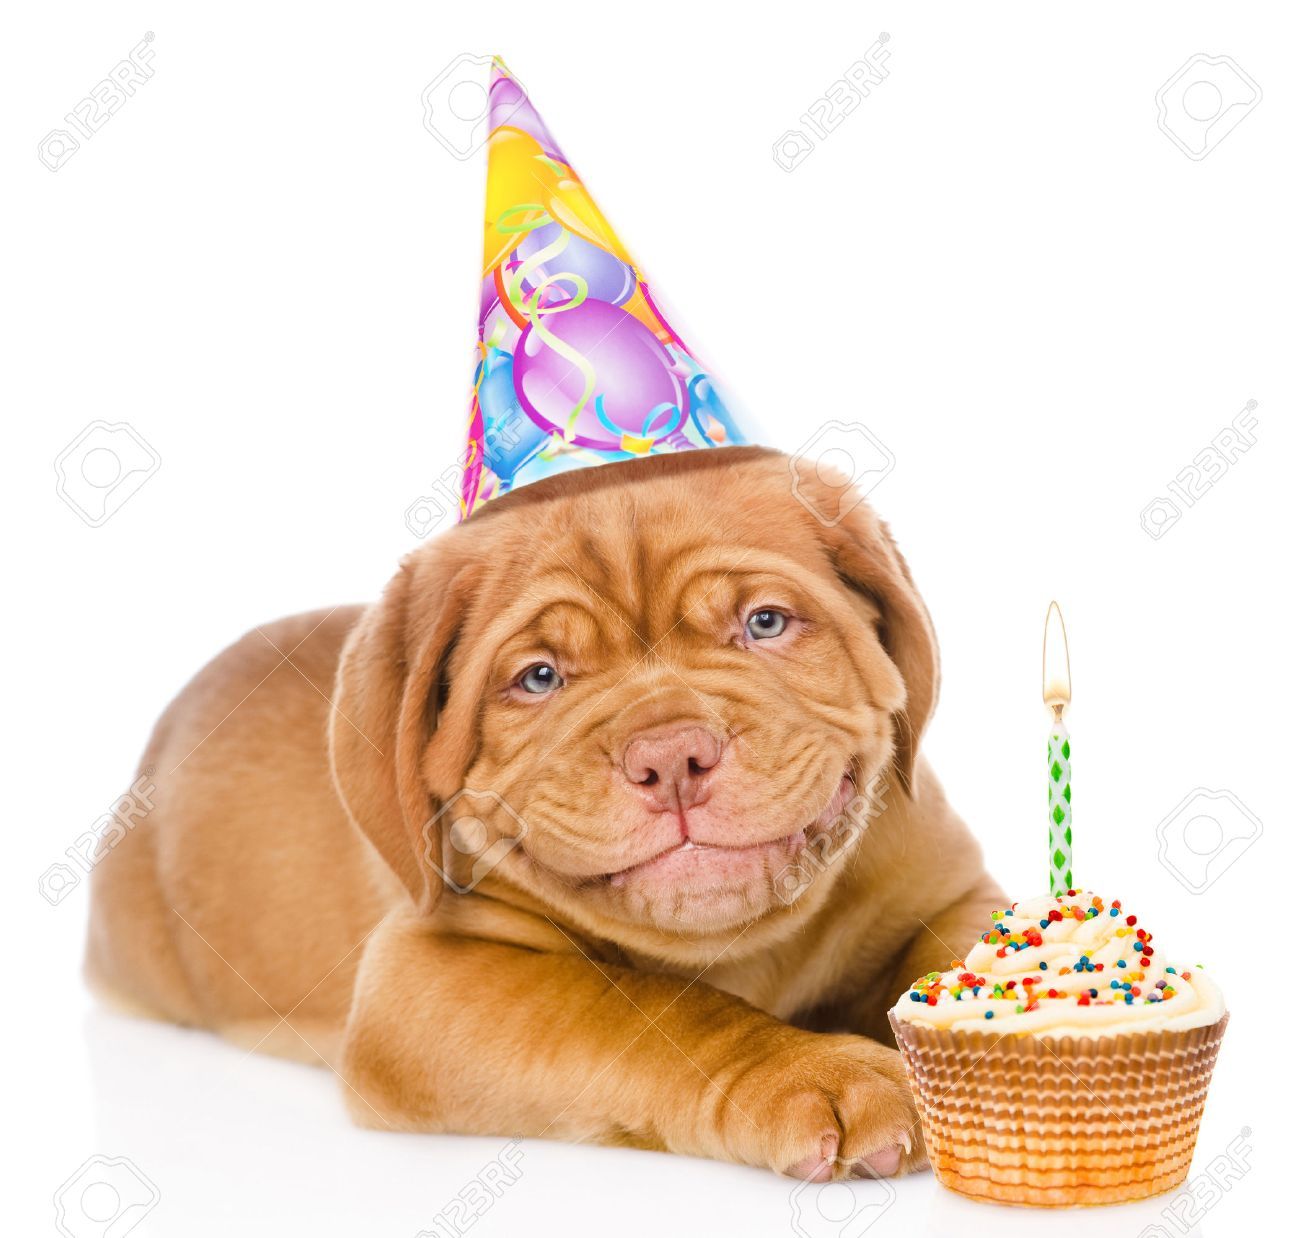 Happy Smiling Bordeaux Puppy Dog With Birthday Hat And Cake Isolated On White Background Stock